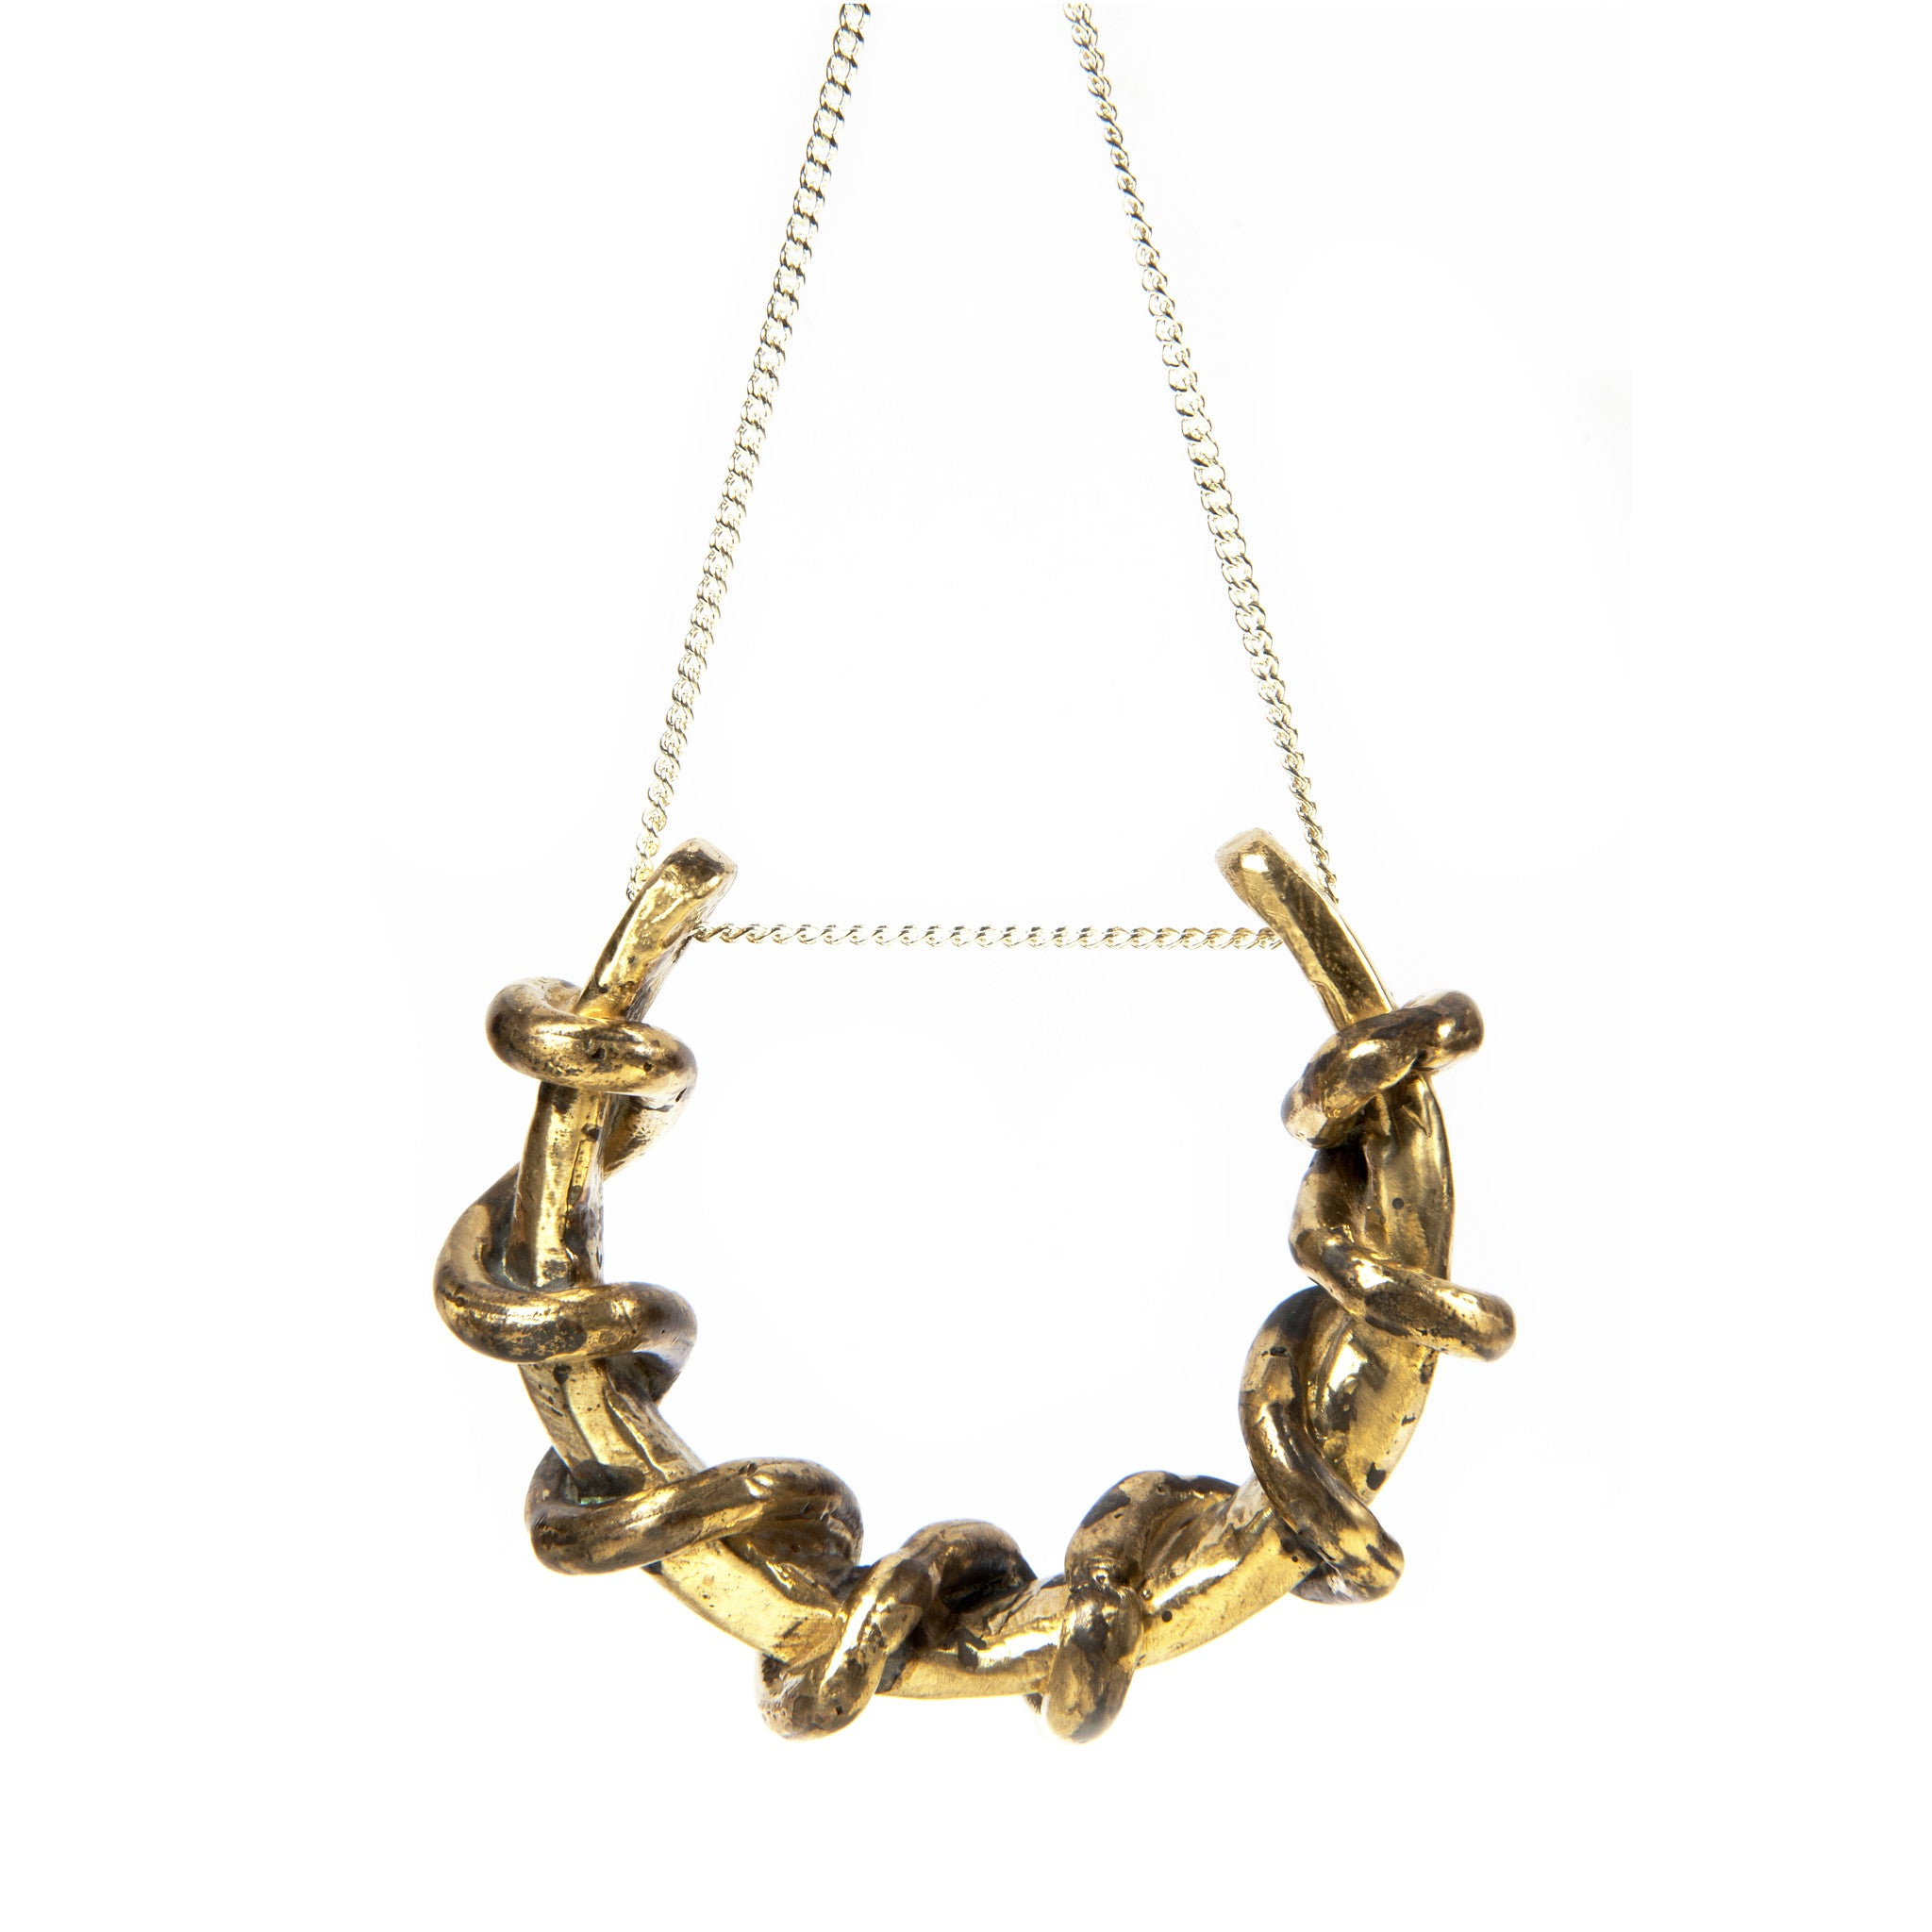 Gilded Wreath Necklace